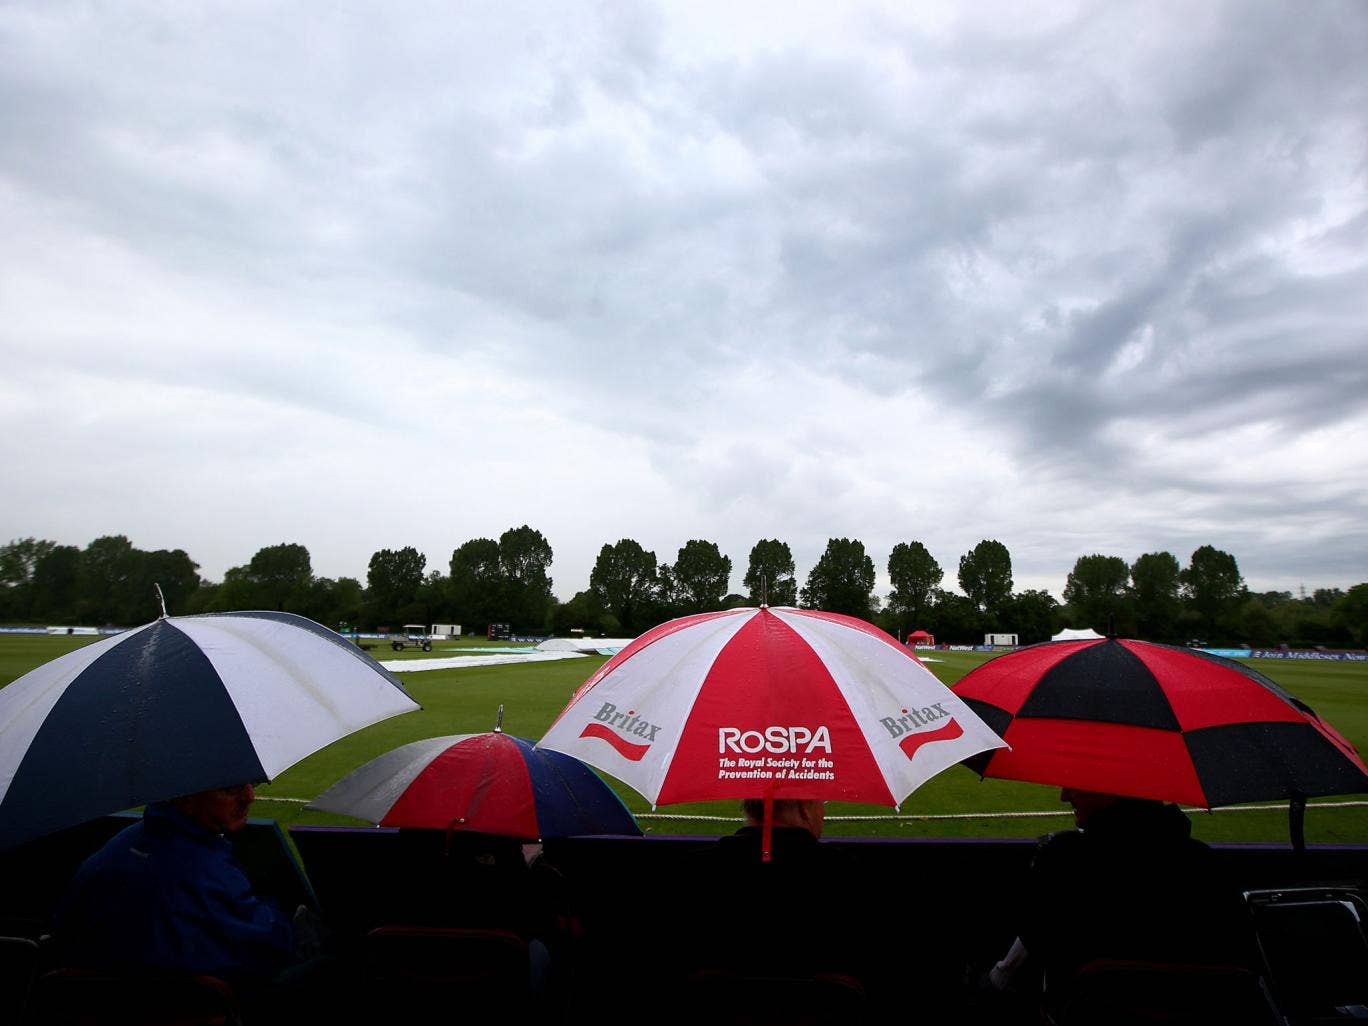 Spectators take shelter as the rain covers come on and the start of play is delayed during the LV County Championship match between Middlesex and Sussex on 26 May in Northwood, England